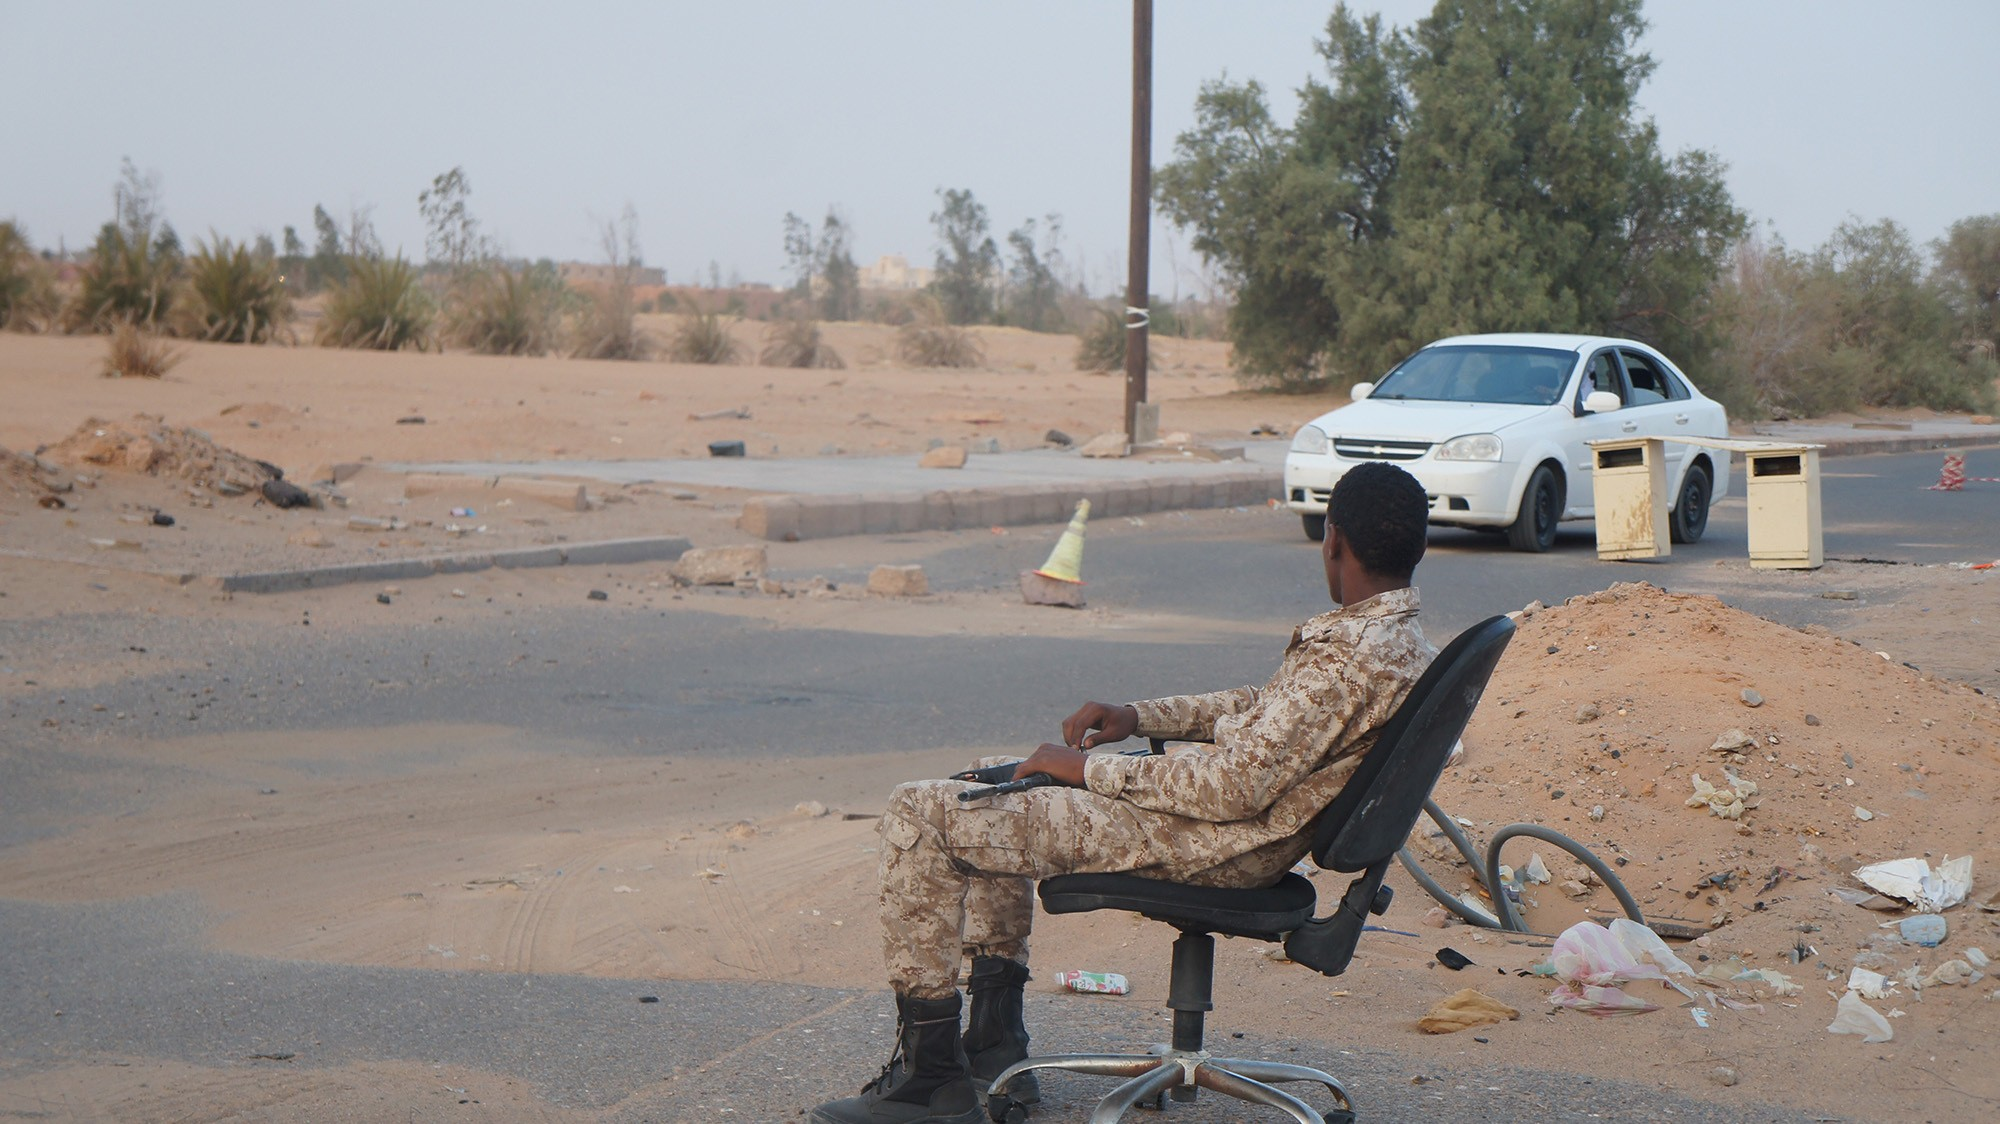 Heavily Armed and With No Economy, This Town Is Libya in a Nutshell